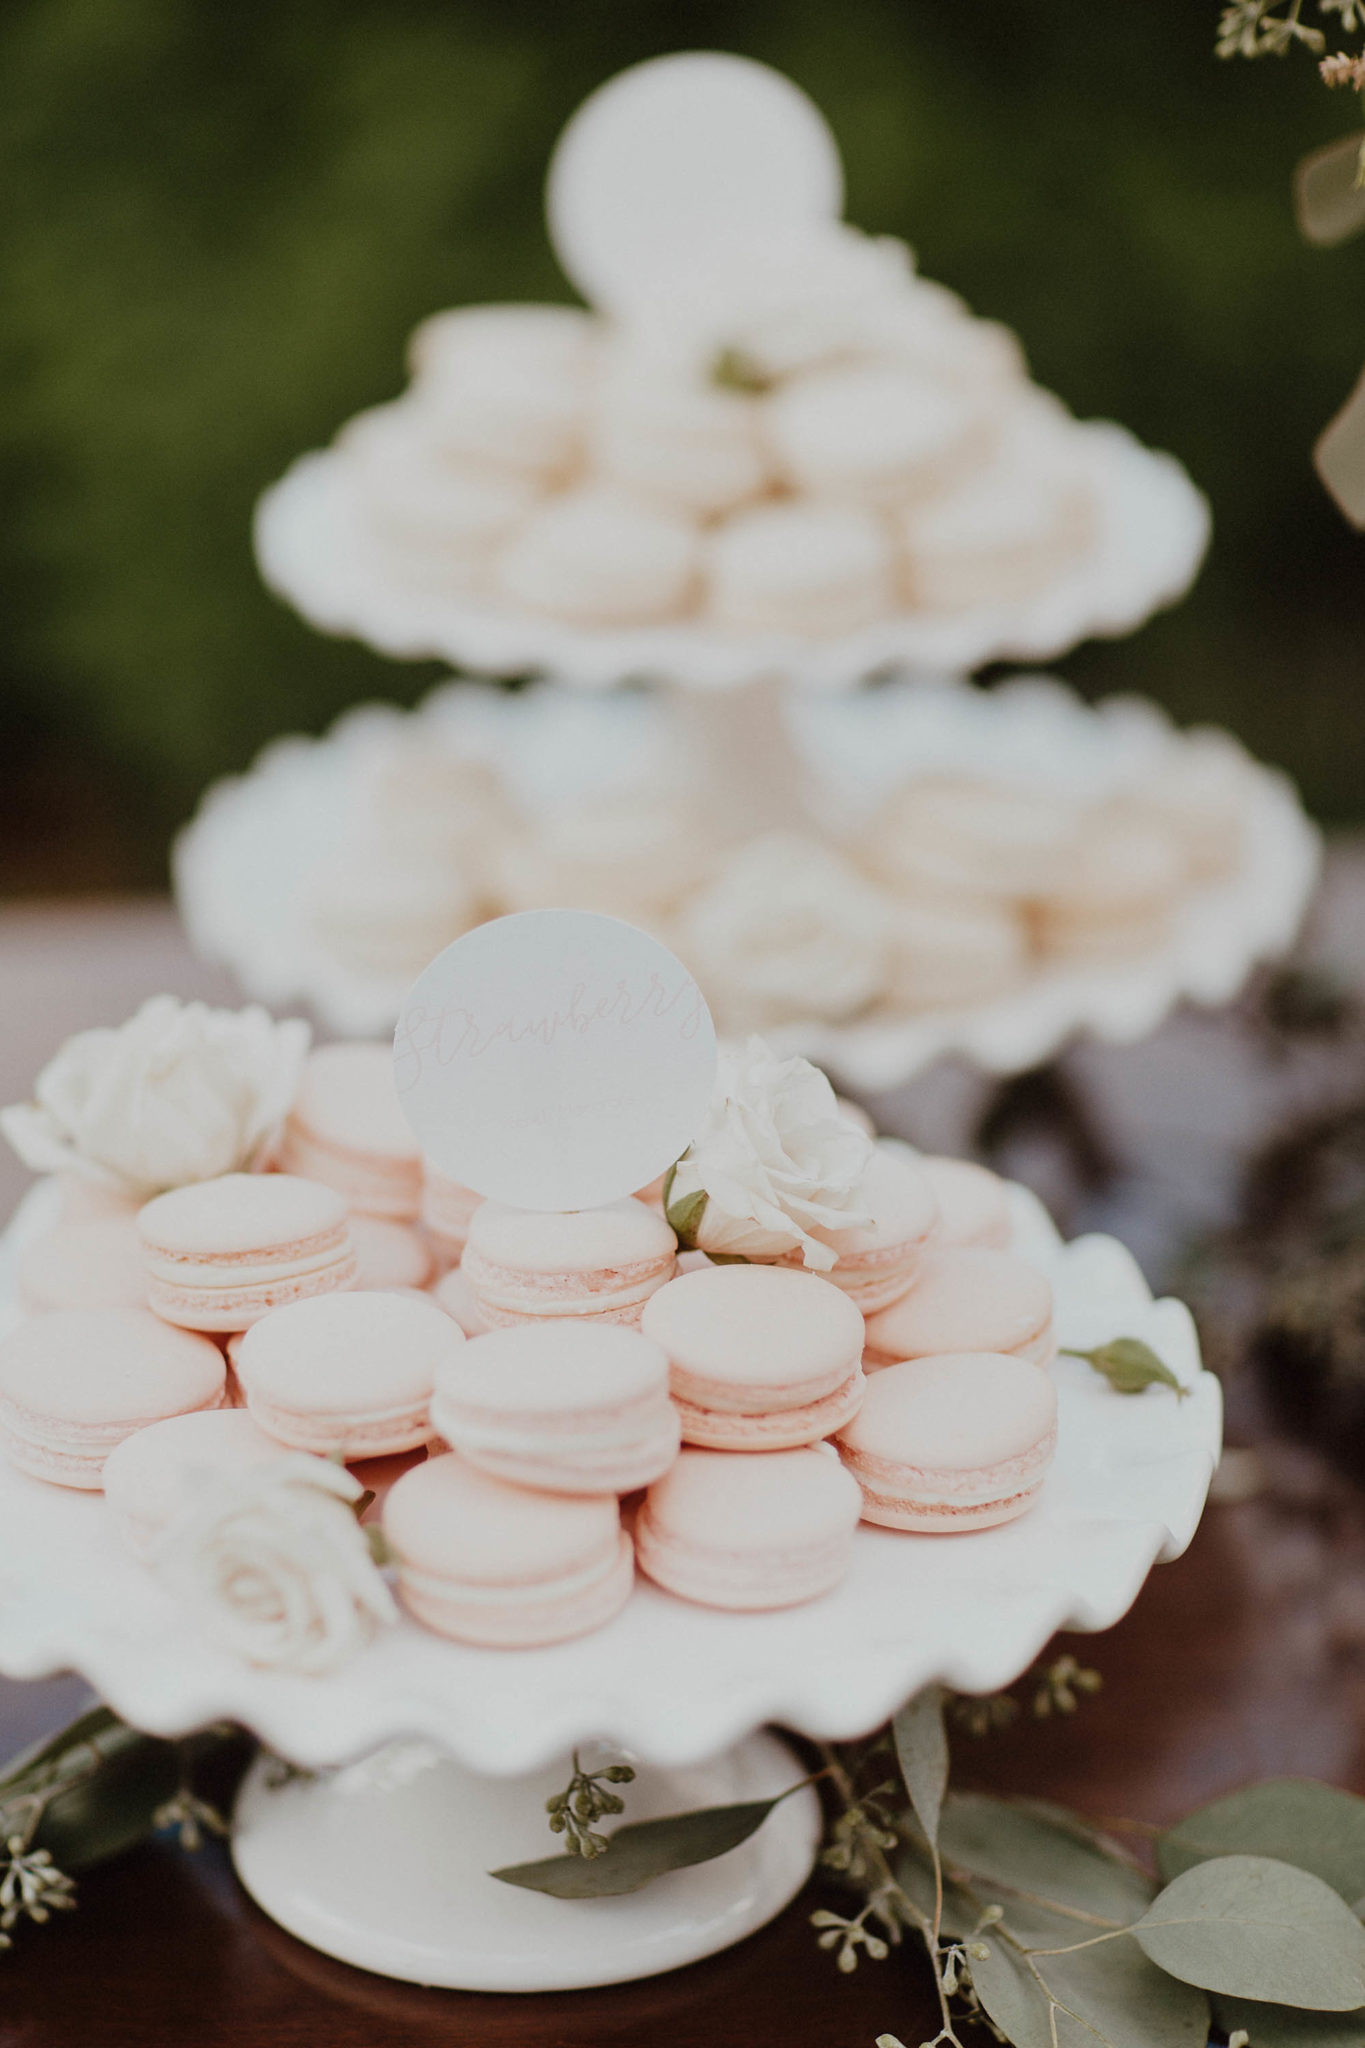 Dessert table blush and white french macarons for wedding on north shore kauai hawaiii